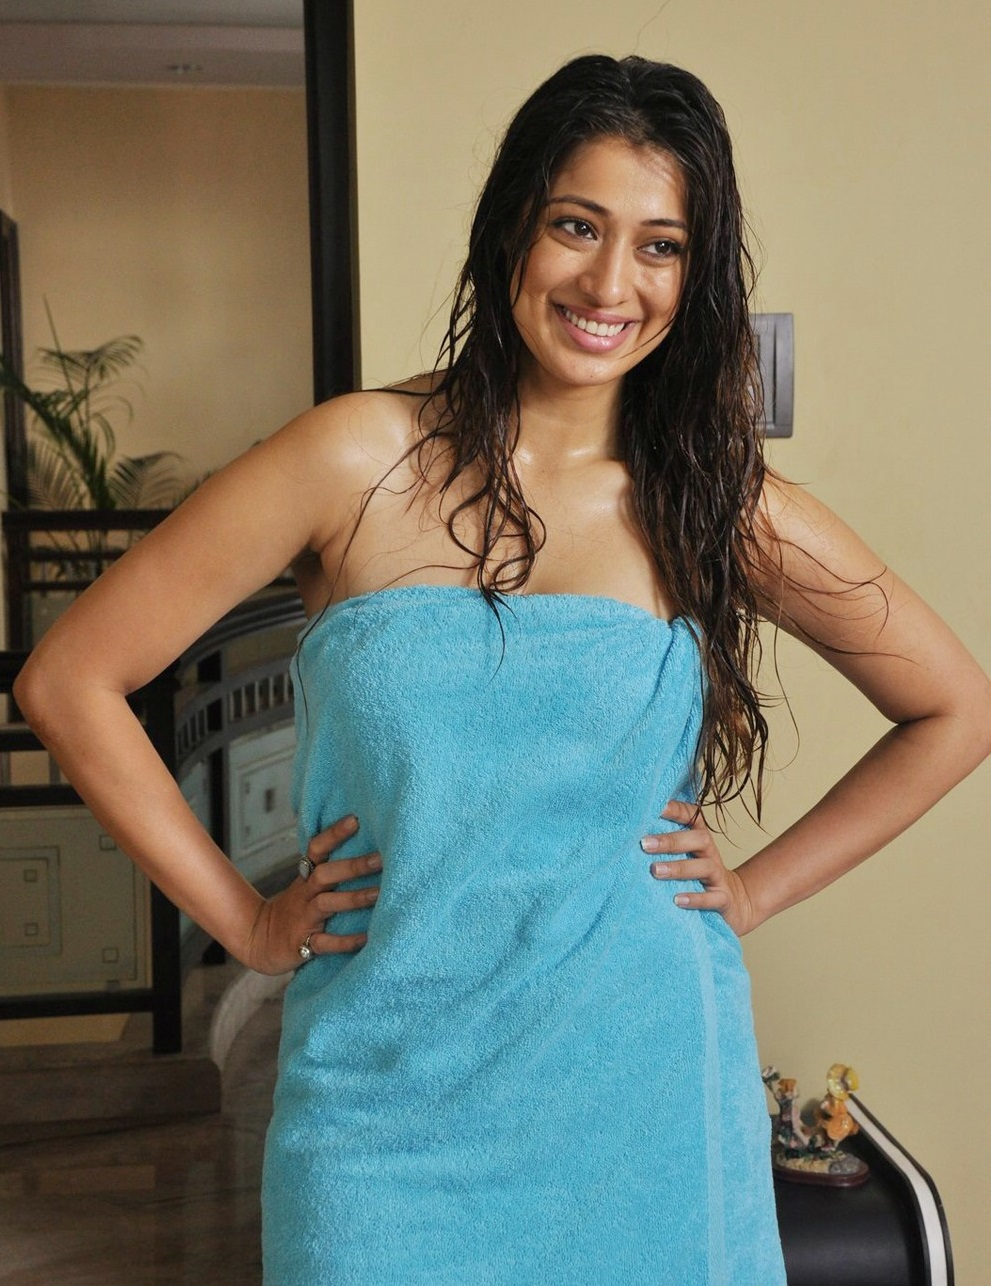 lakshmi-rai-hot-photos-in-bikini